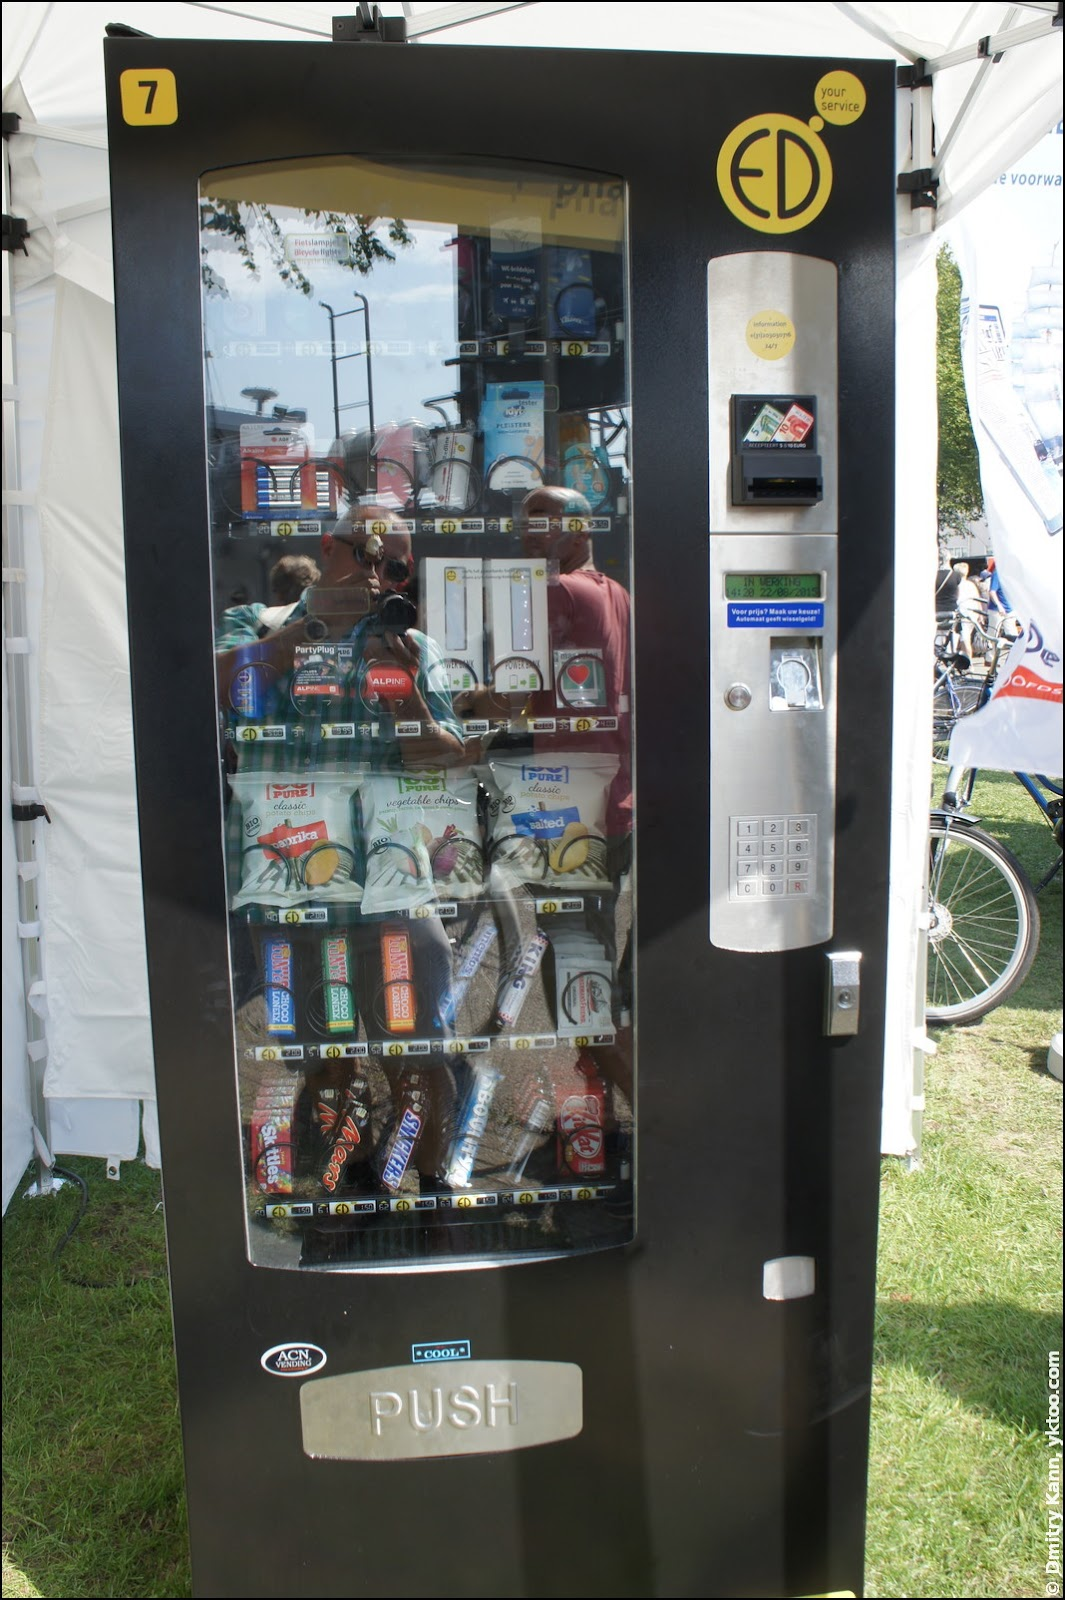 Vending machine for food and gadgets.